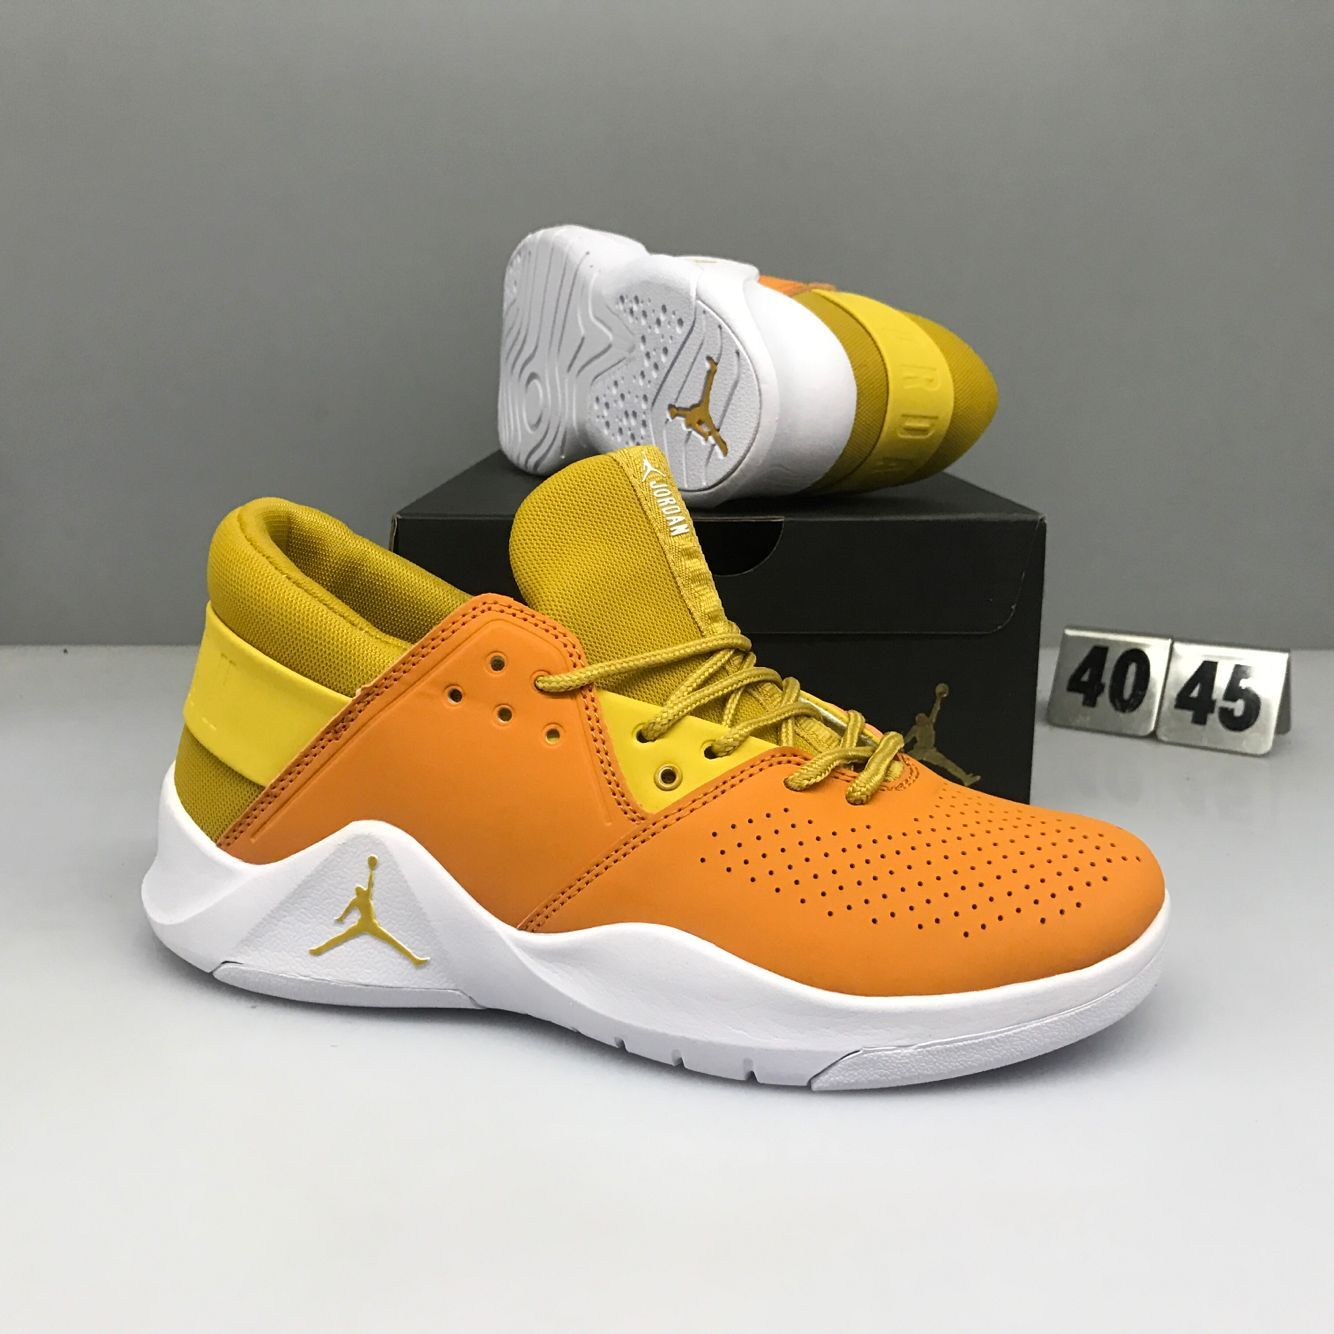 Nike Jordan Flight Fresh Yellow White Shoes